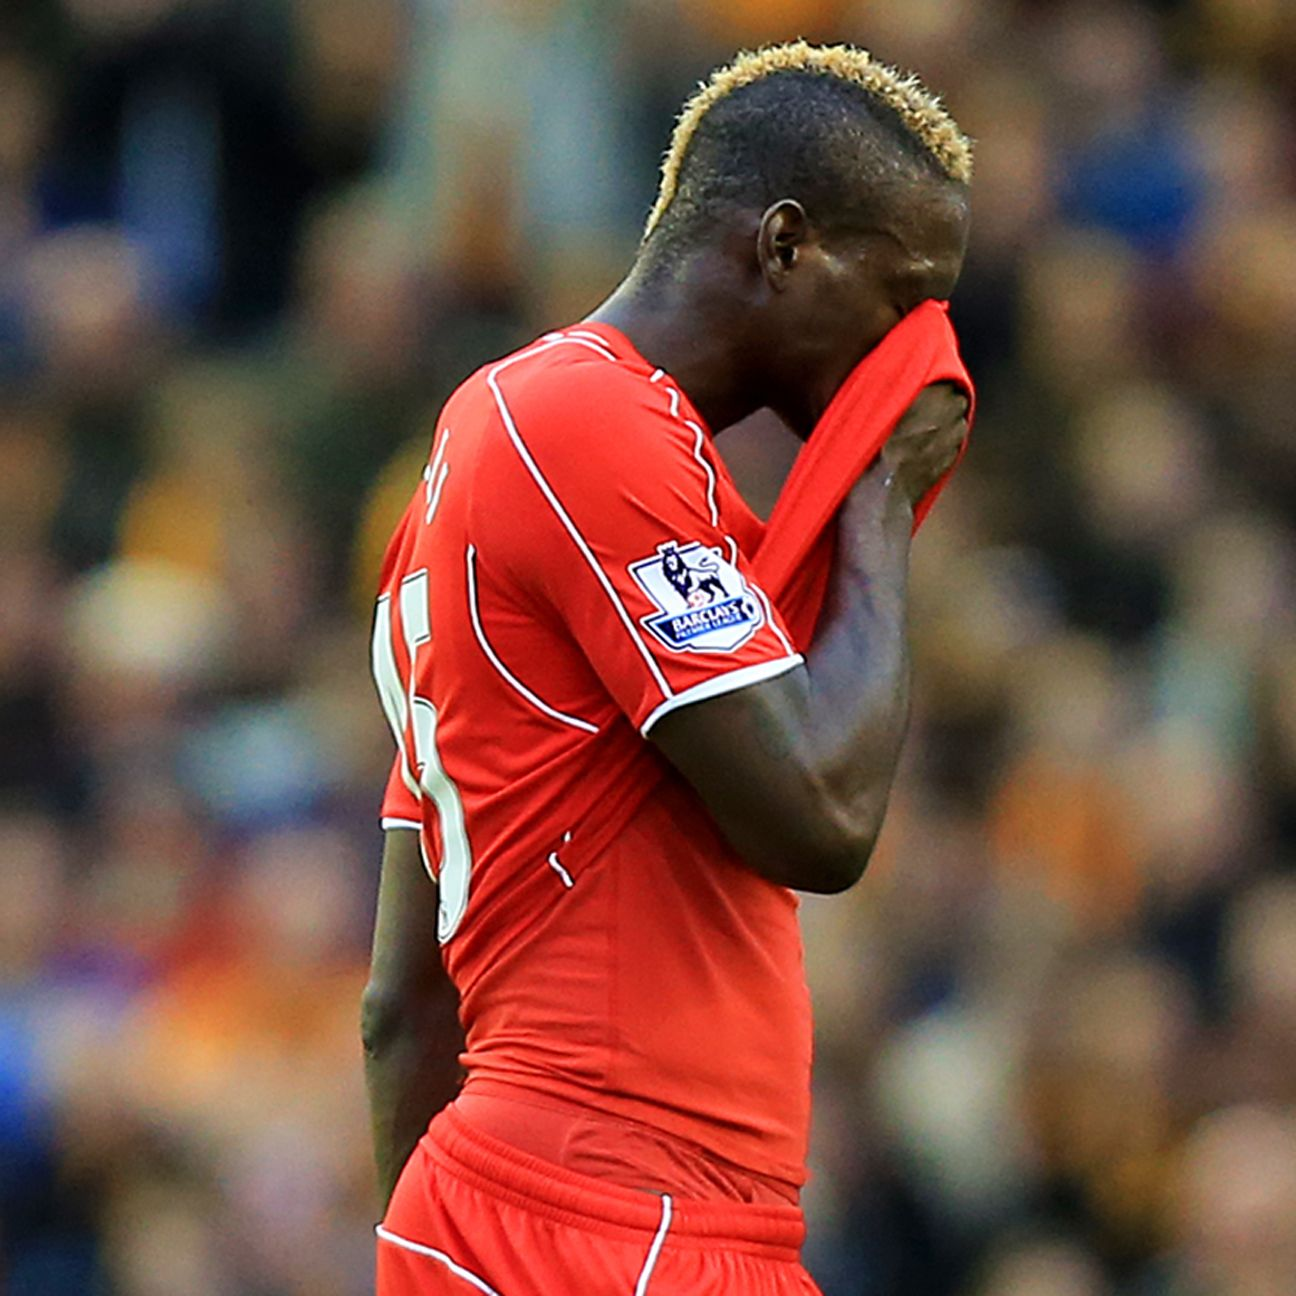 Mario Balotelli is still seeking his first Premier League goal in Liverpool red.